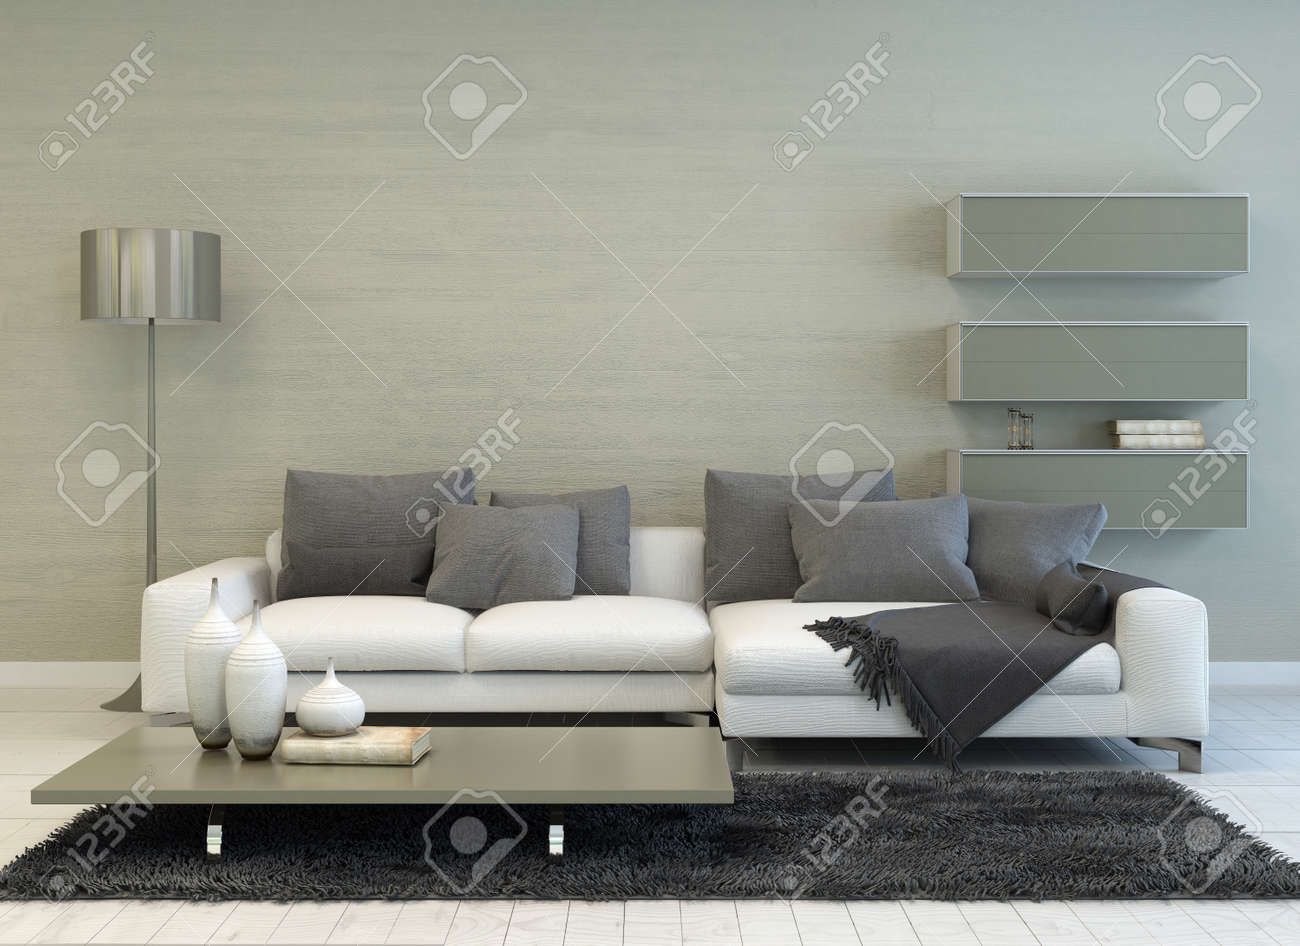 Modern Grey and White Living Room with Floor Lamp, Sofa, Coffee..